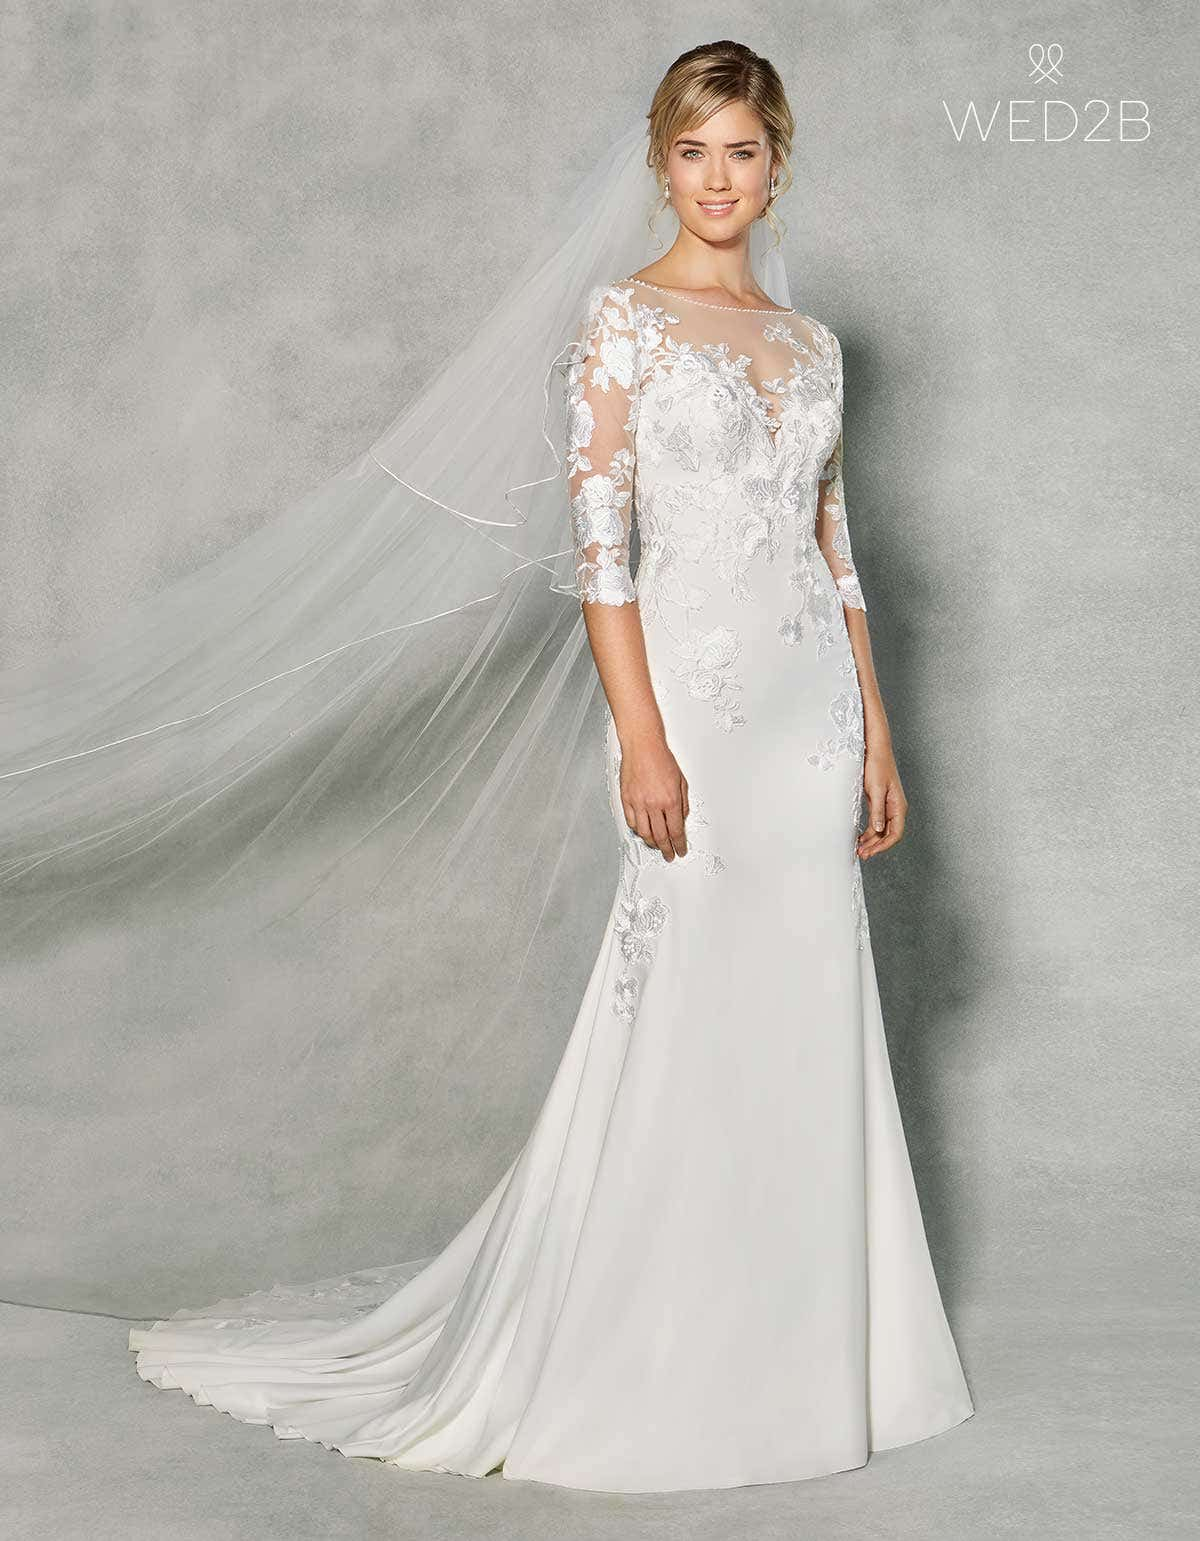 New! A stunning wedding dress with sleeves by Anna Sorrano   WED2B ...